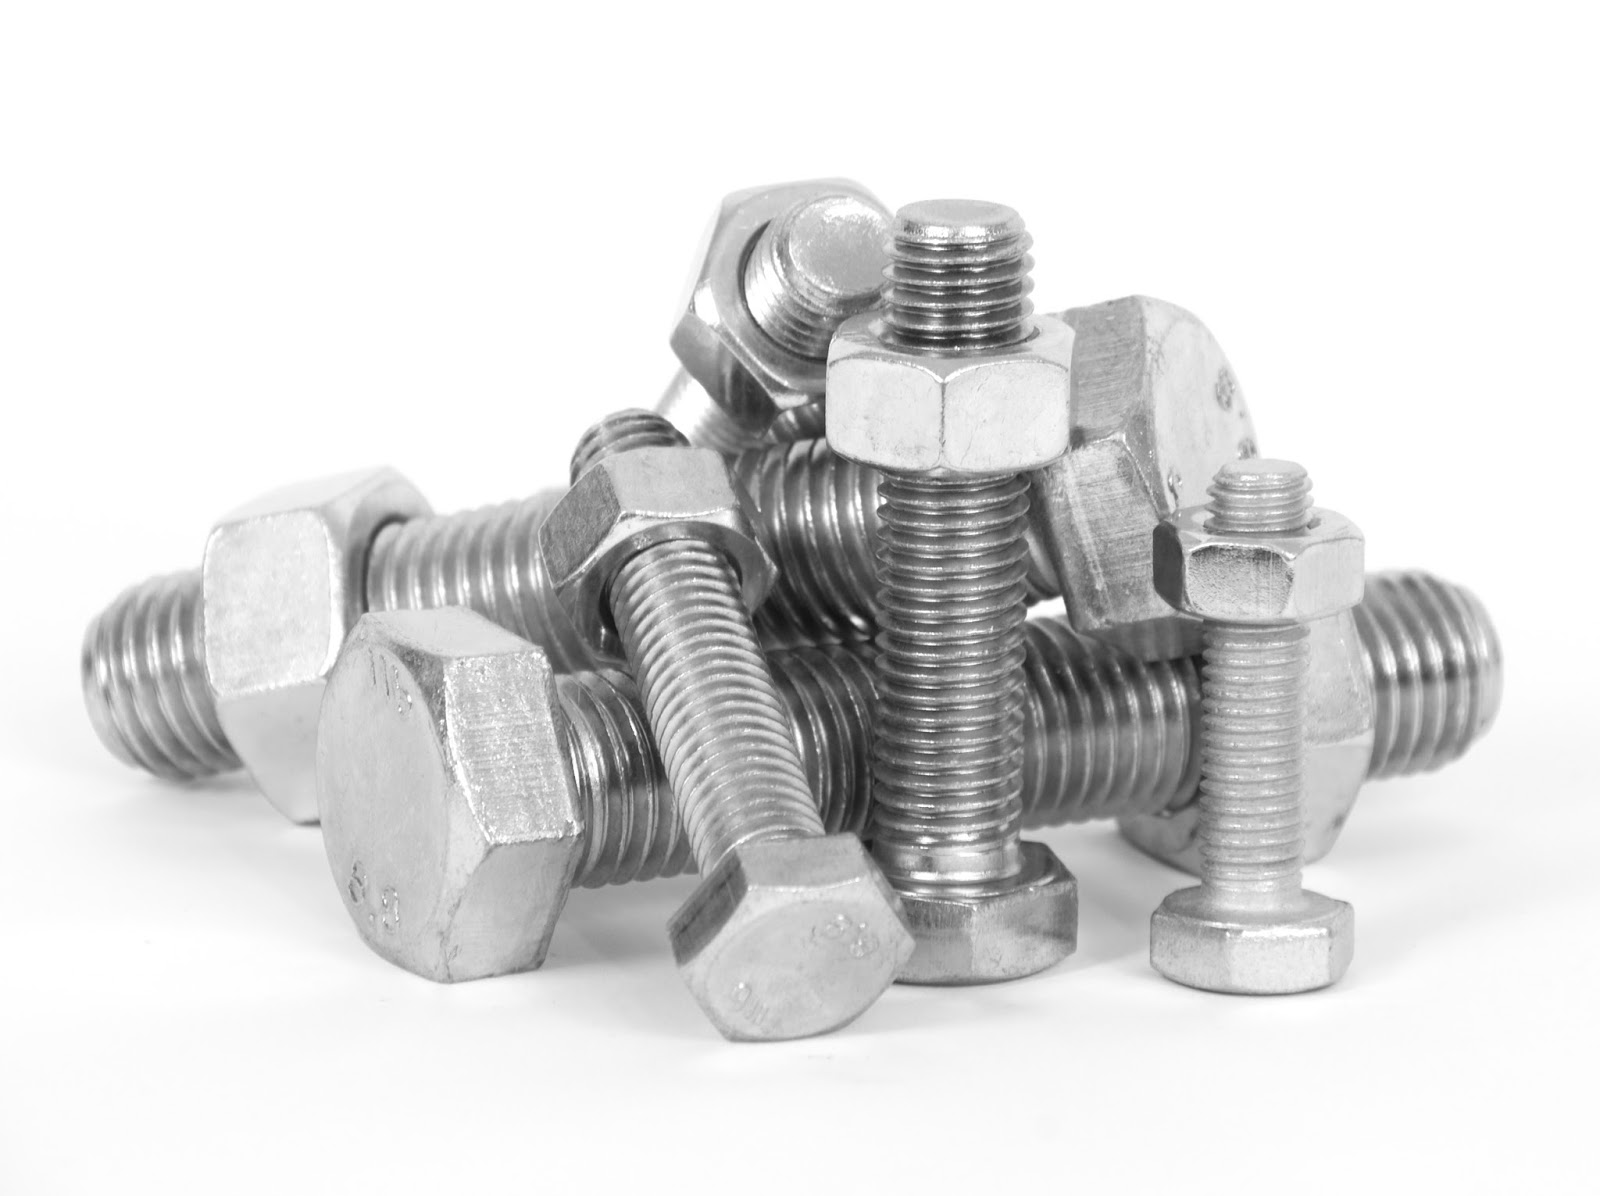 BOLTS & NUTS SUPPLIERS in QATAR